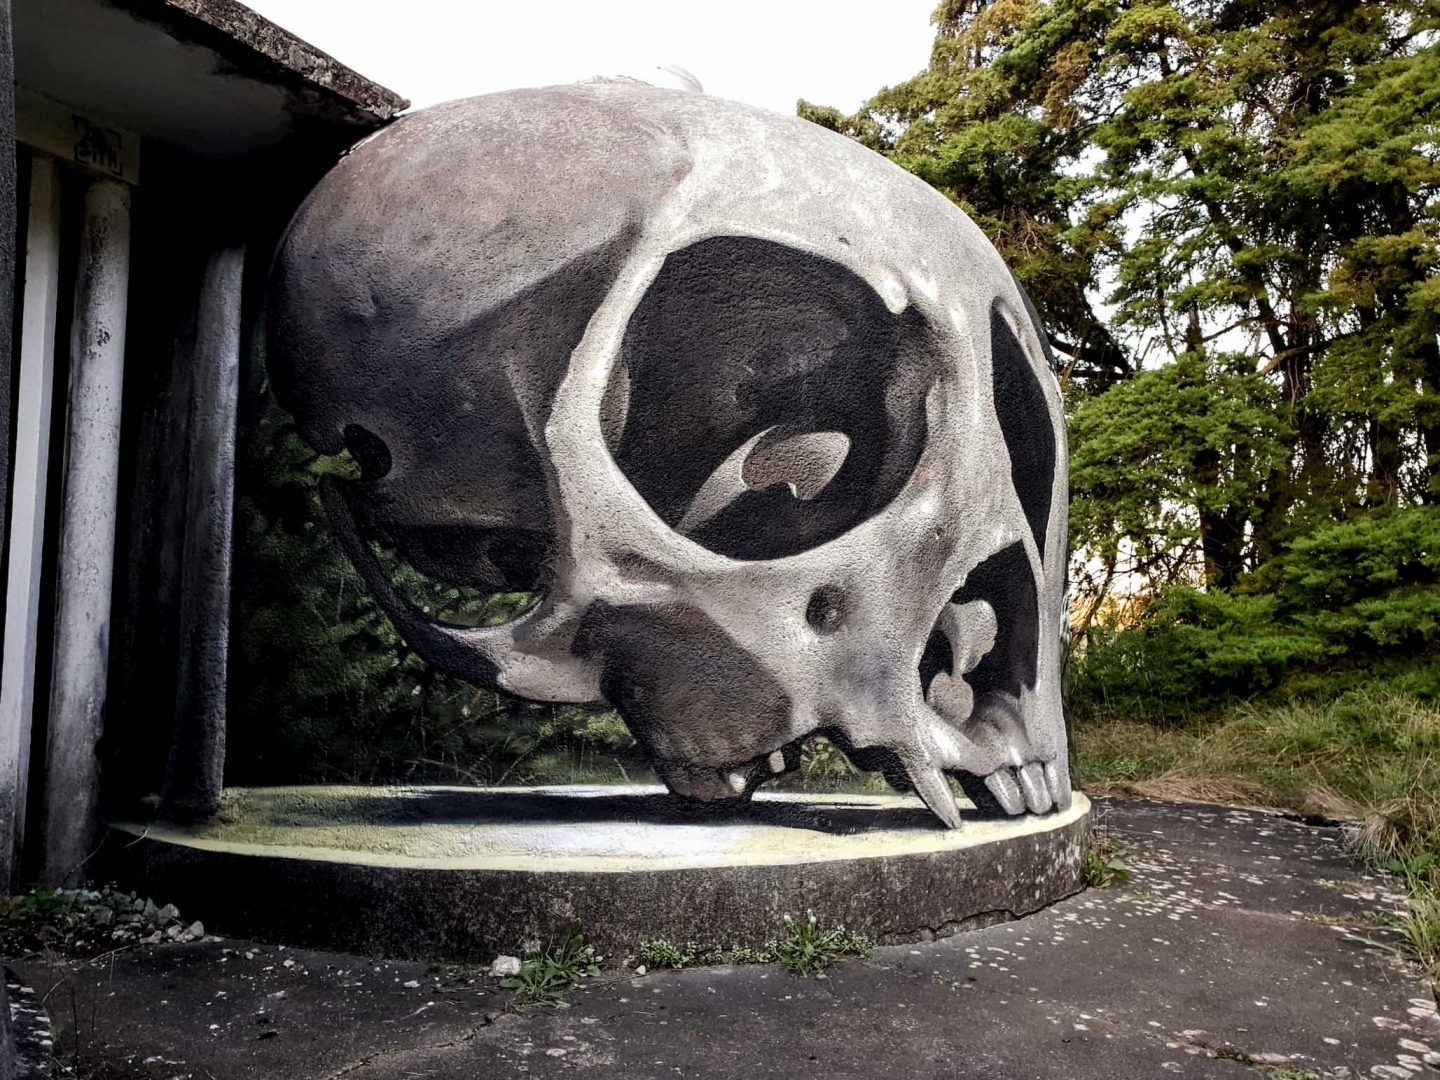 Odeith's squirrel monkey skull piece